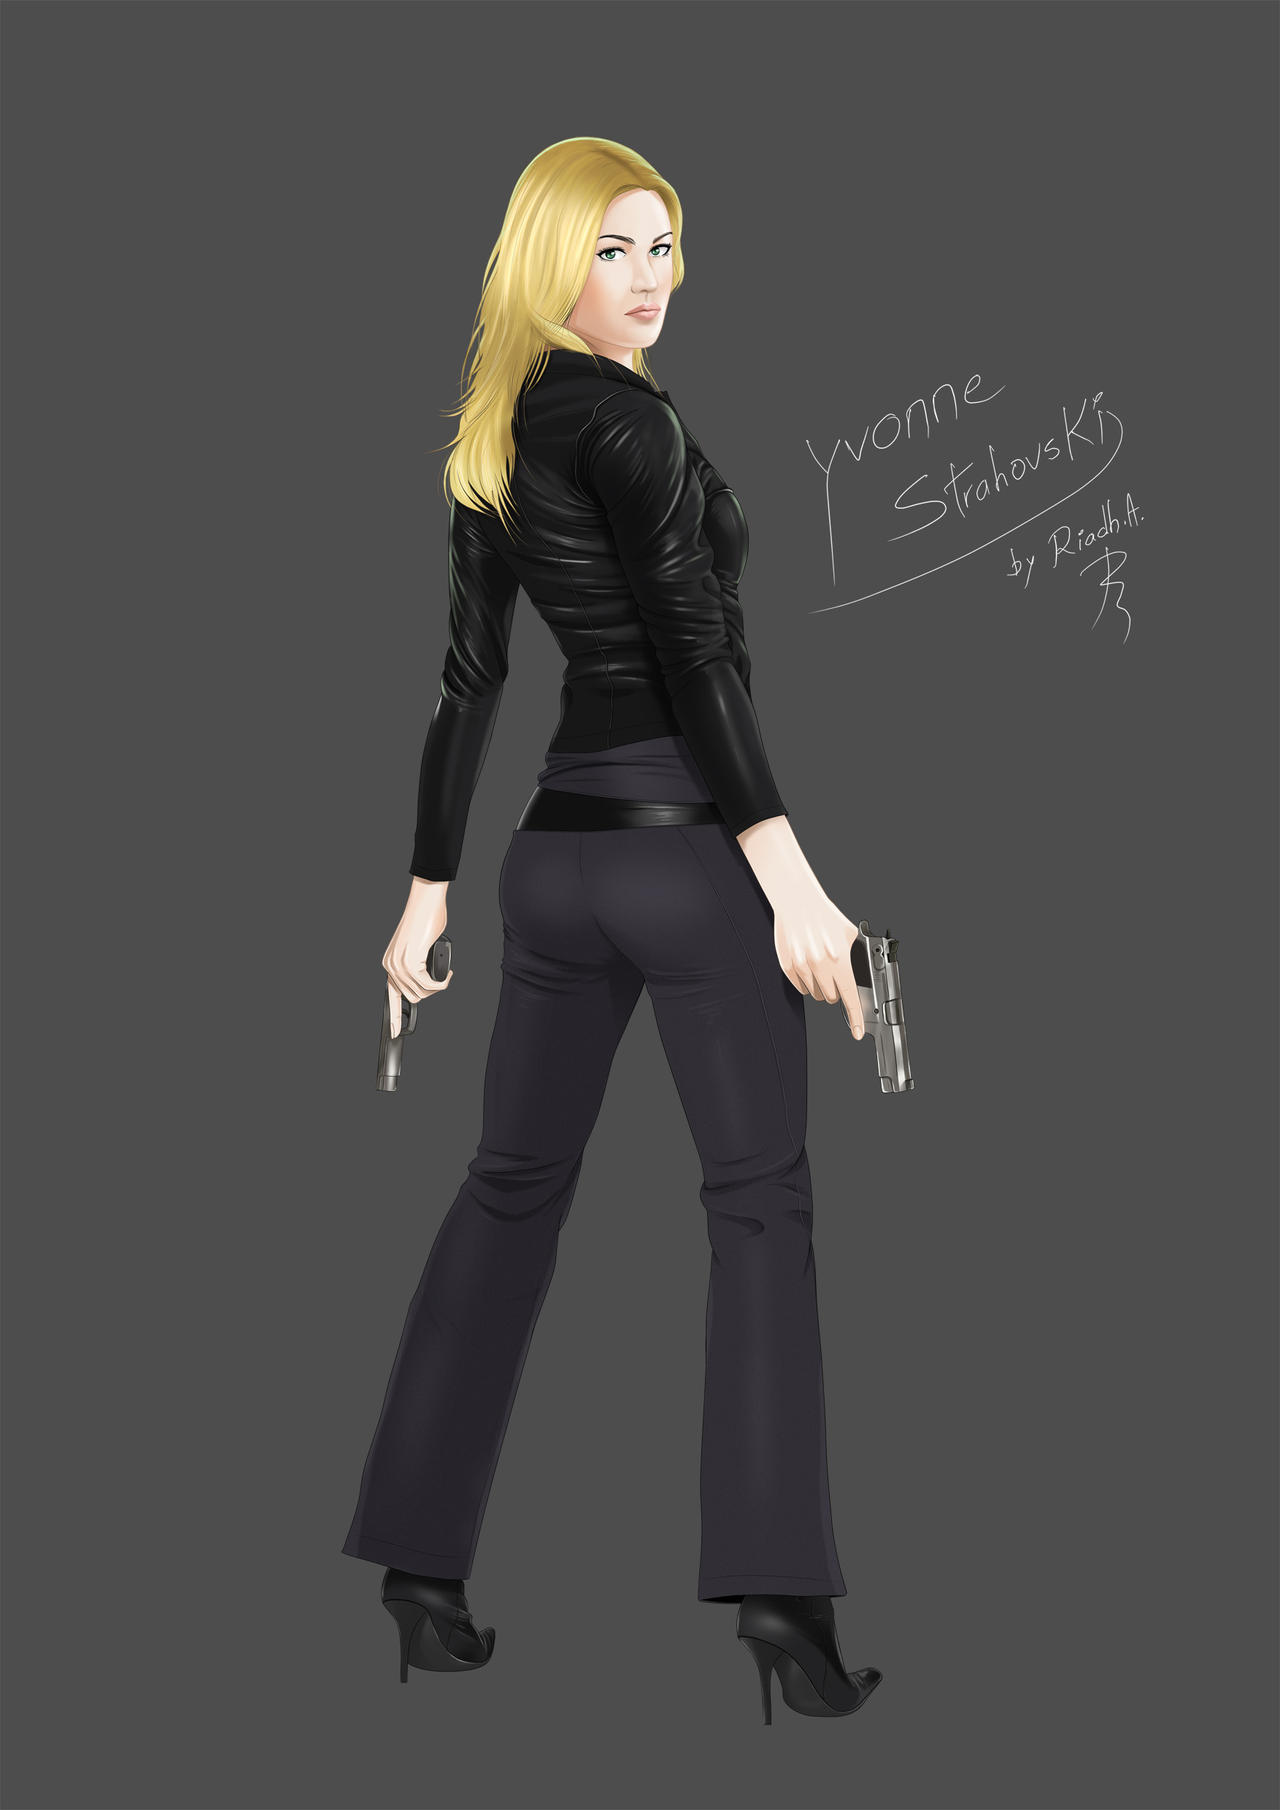 http://fc05.deviantart.net/fs70/i/2011/315/e/5/yvonne_strahovski_full_body_version_by_aryctek-d4ft4v4.jpg